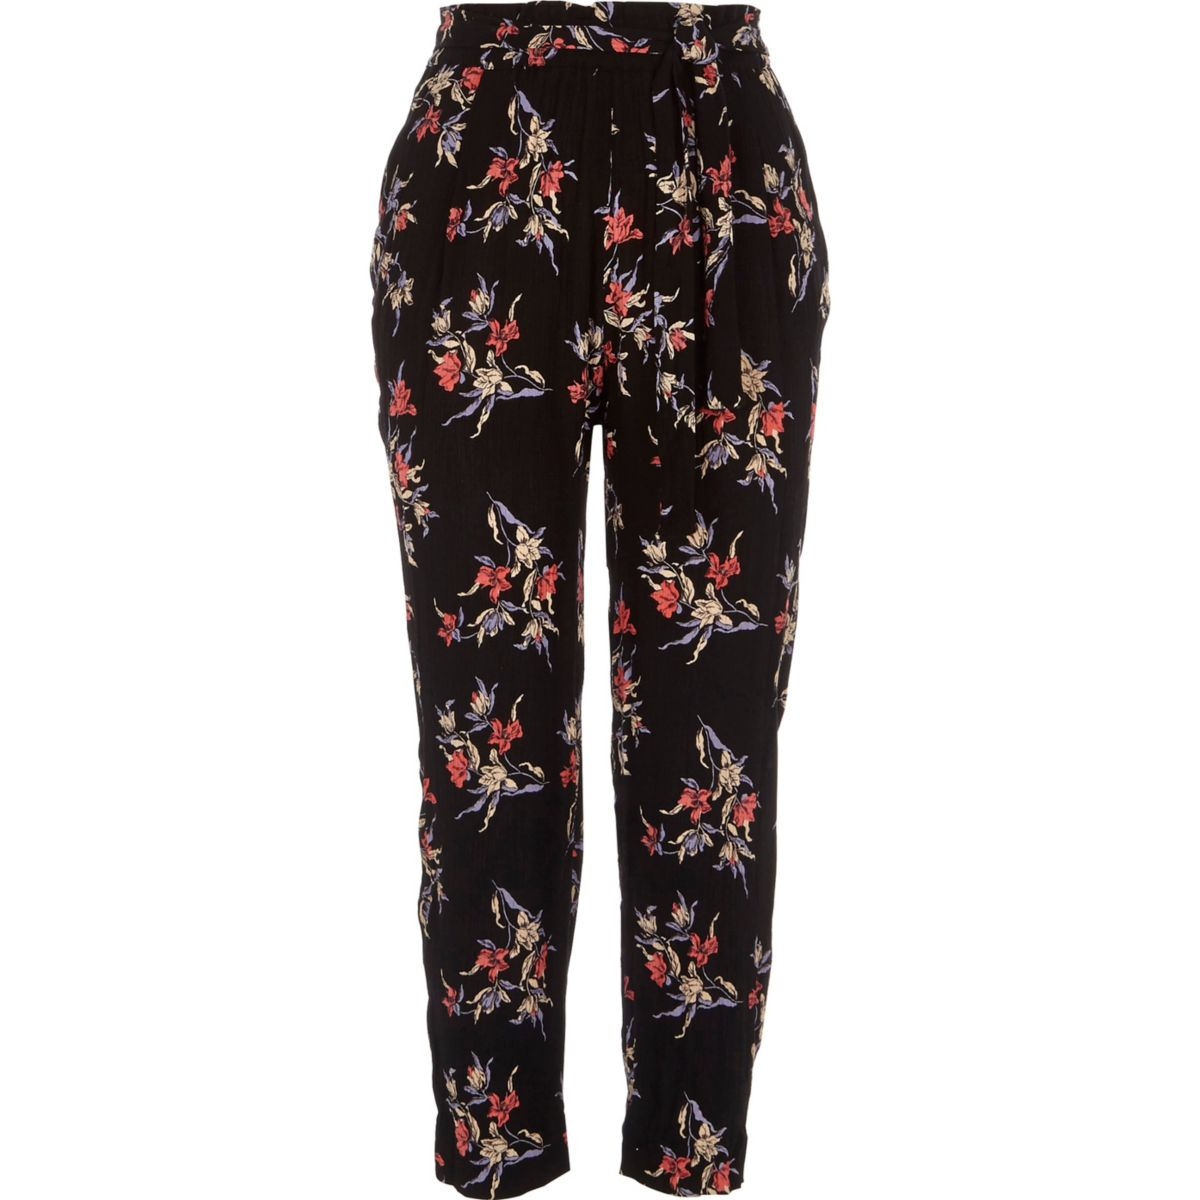 Black floral print tapered trousers - Trousers - Sale - women